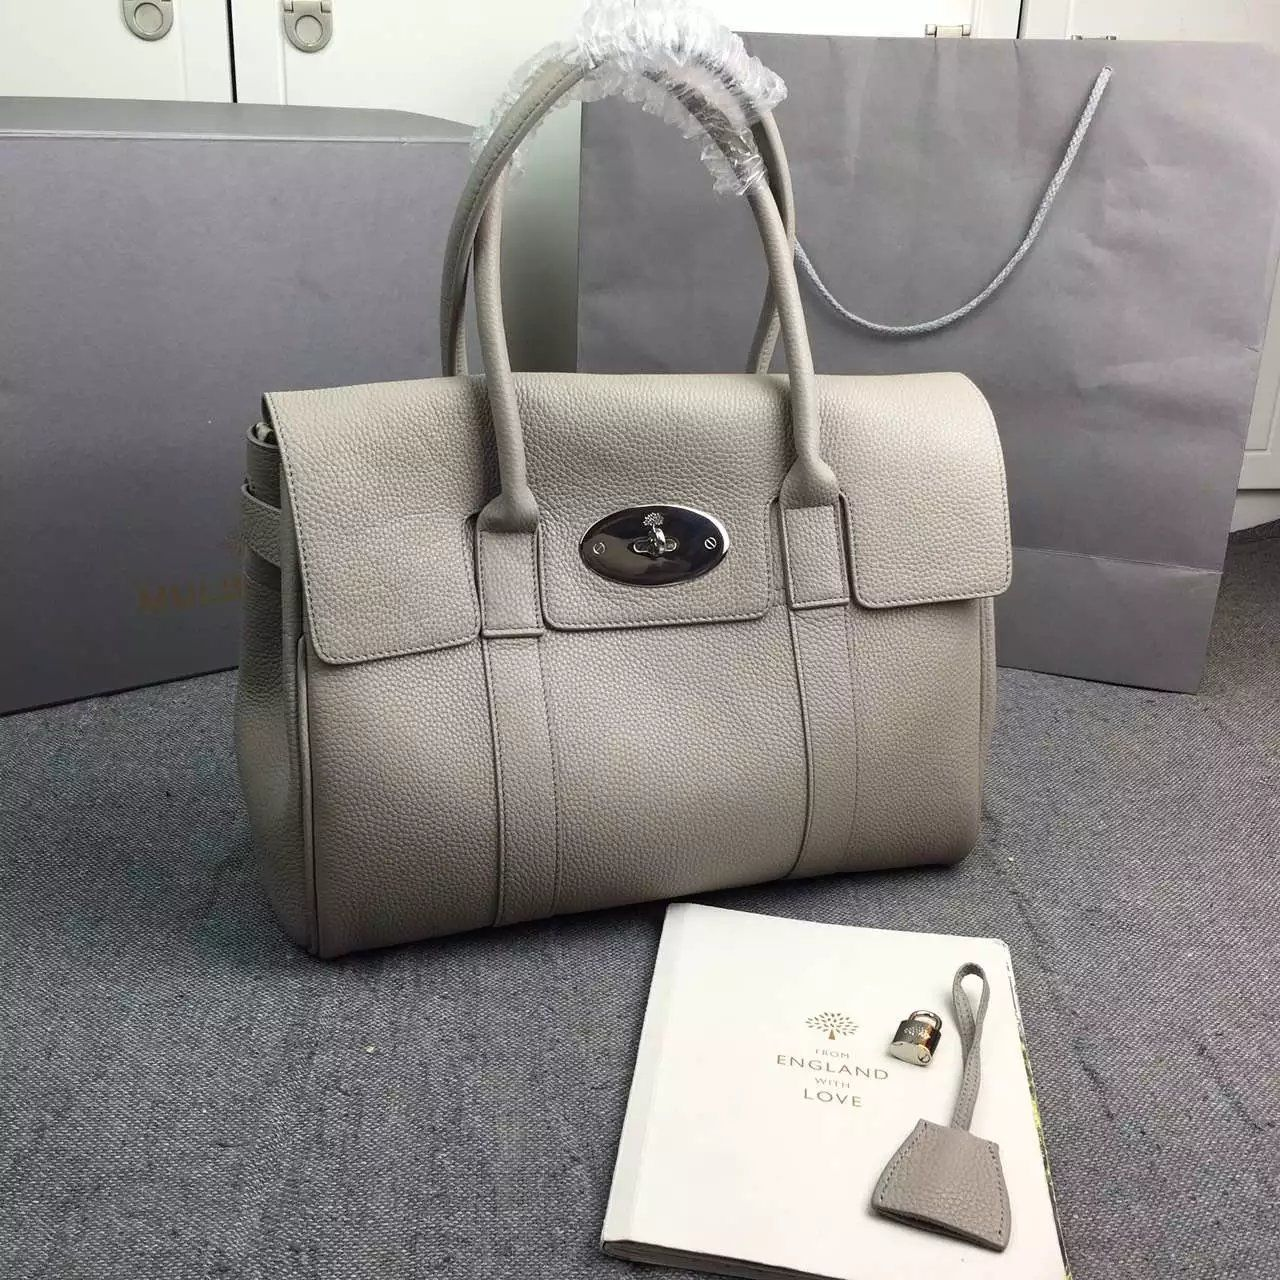 New Color 2017 Mulberry Handbags Collection Outlet Uk Bayswater Bag In Granny Classic